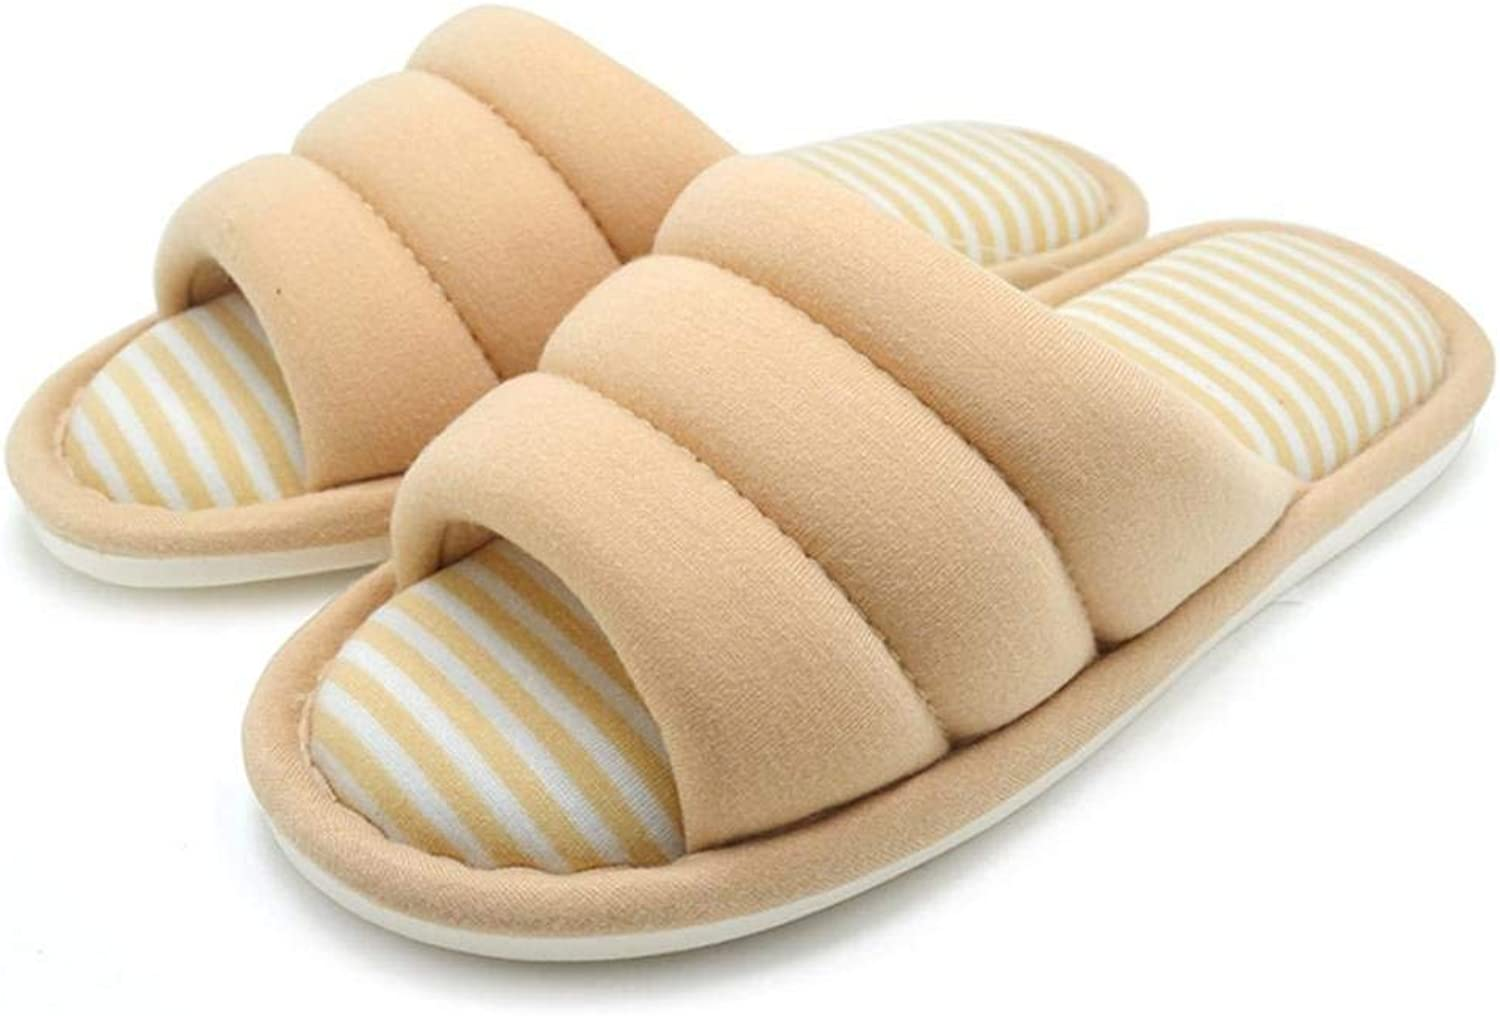 Lady Slippers Ladies Cotton shoes Simplicity All Seasons Indoor Home Slippers of Soft Cotton Slippers for Women Pink Yellow